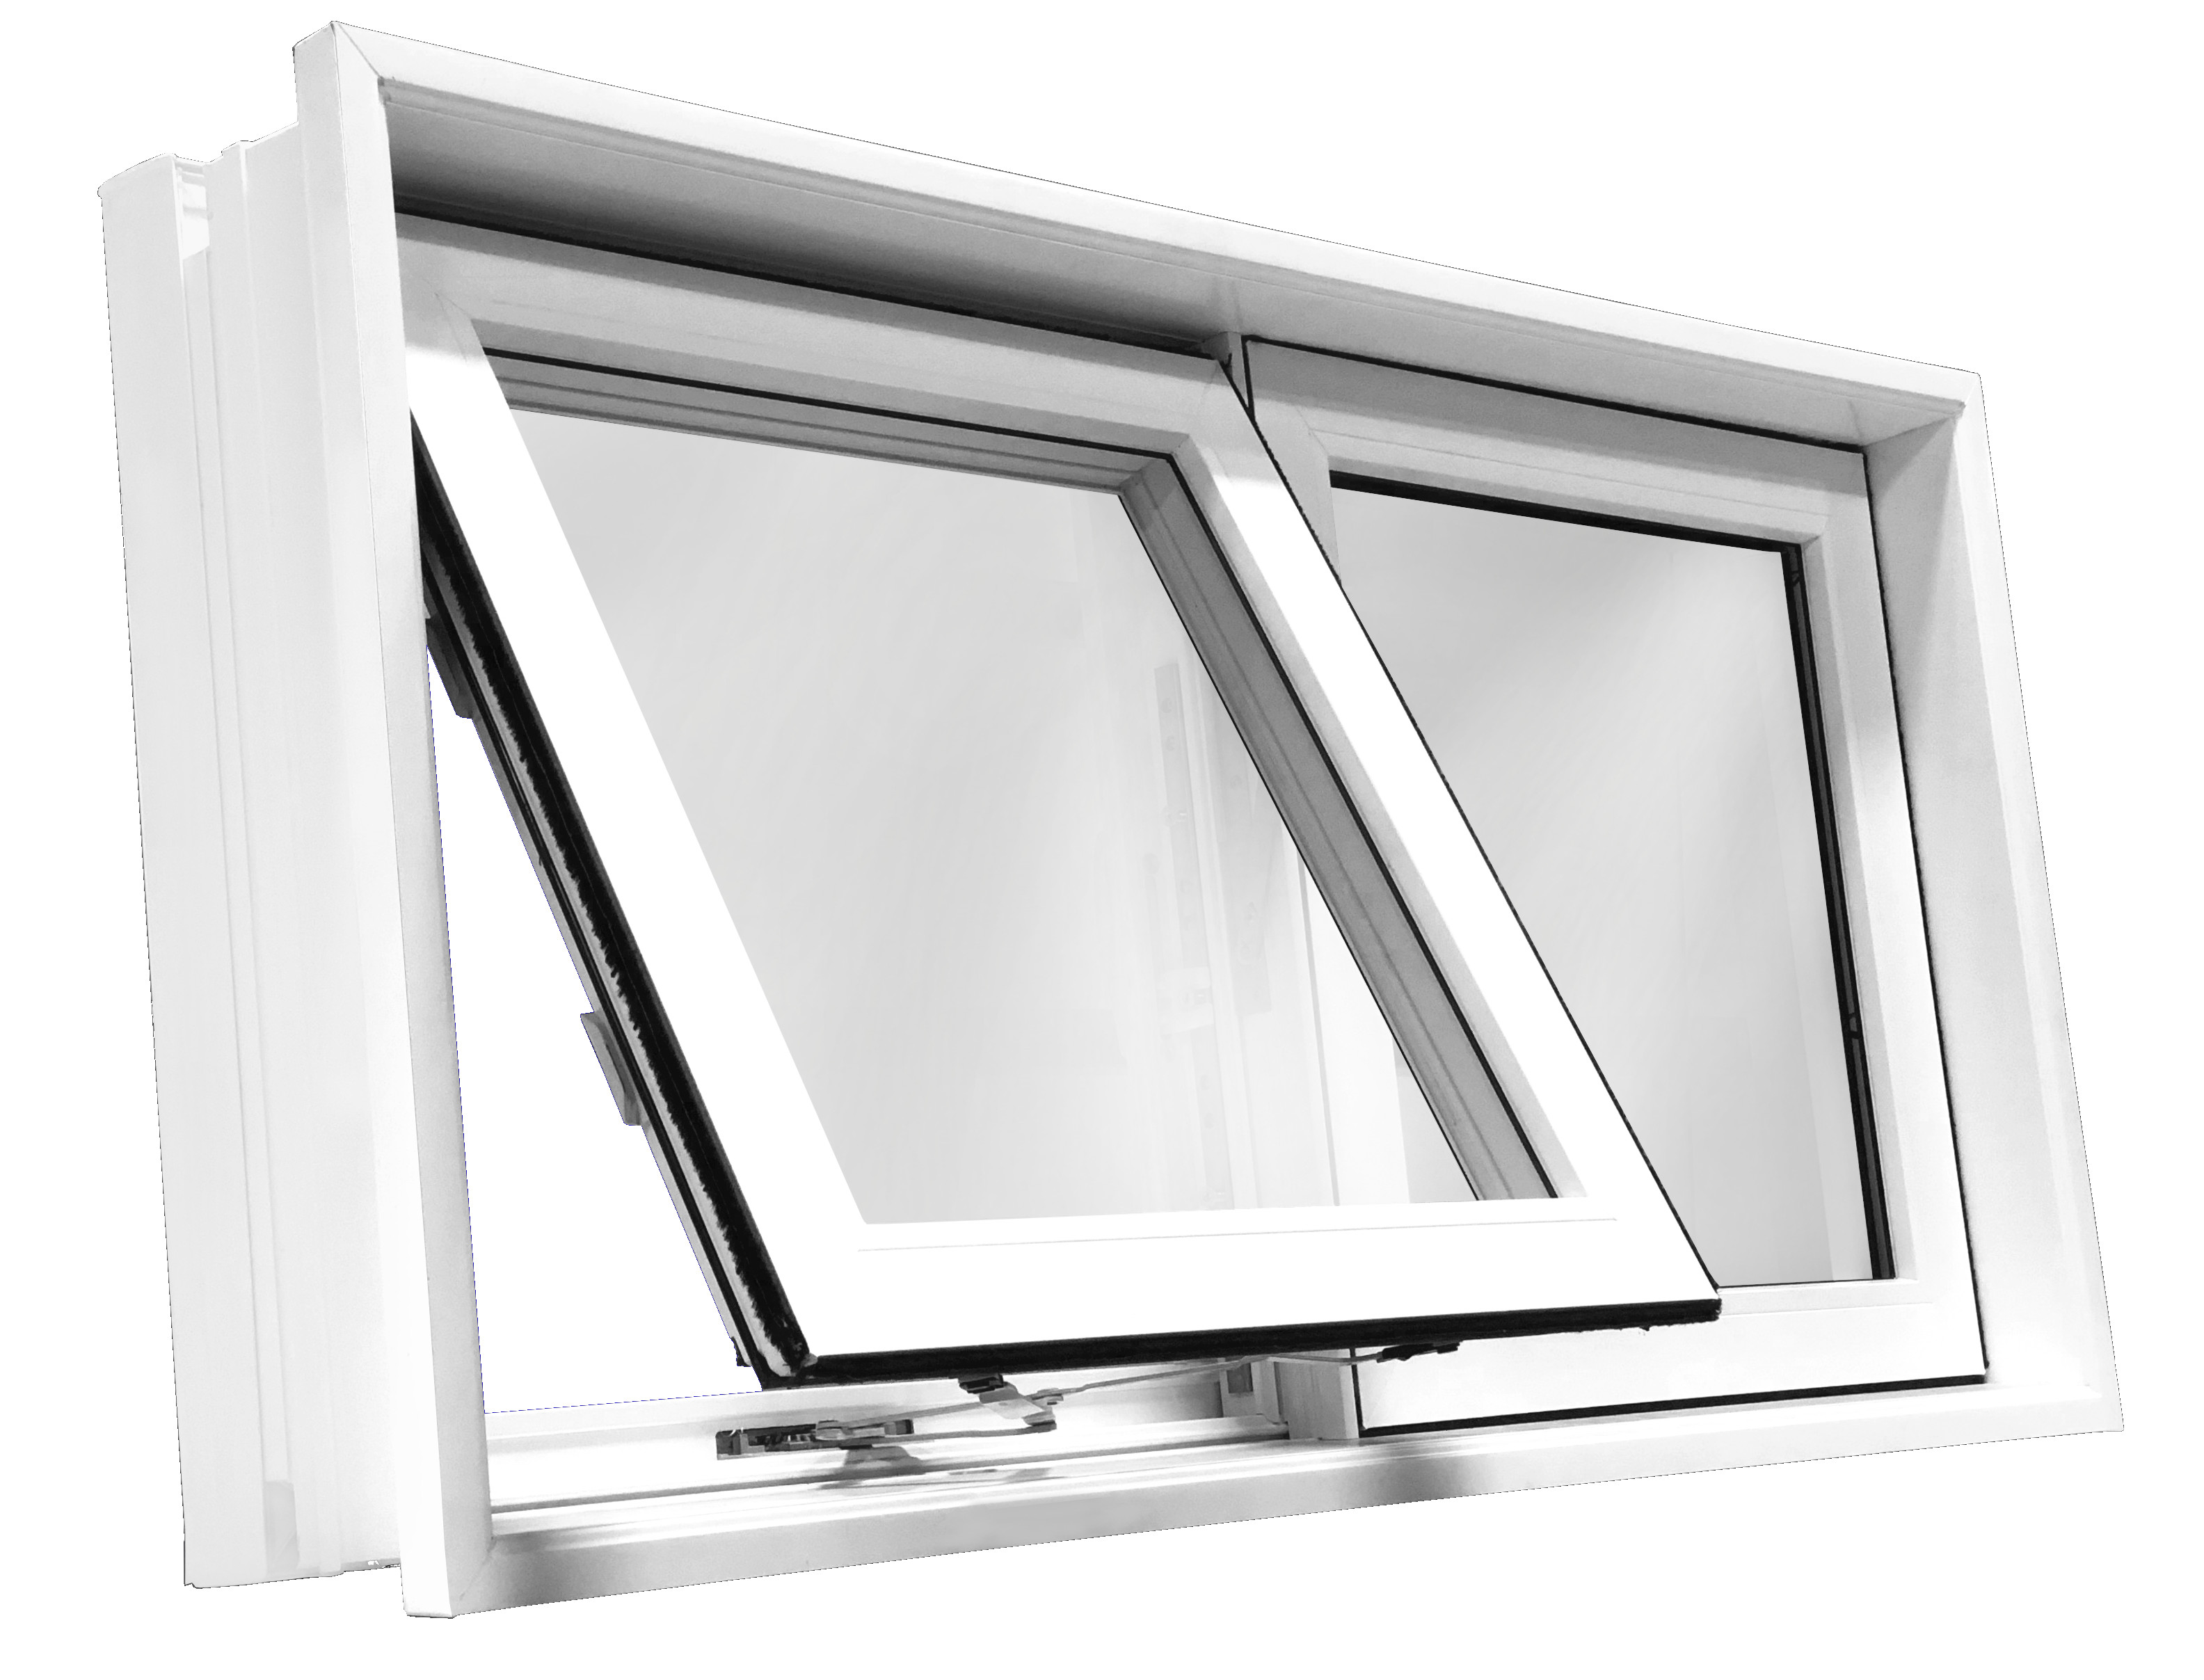 window and awning doors quebec product solensis qc pvc windows